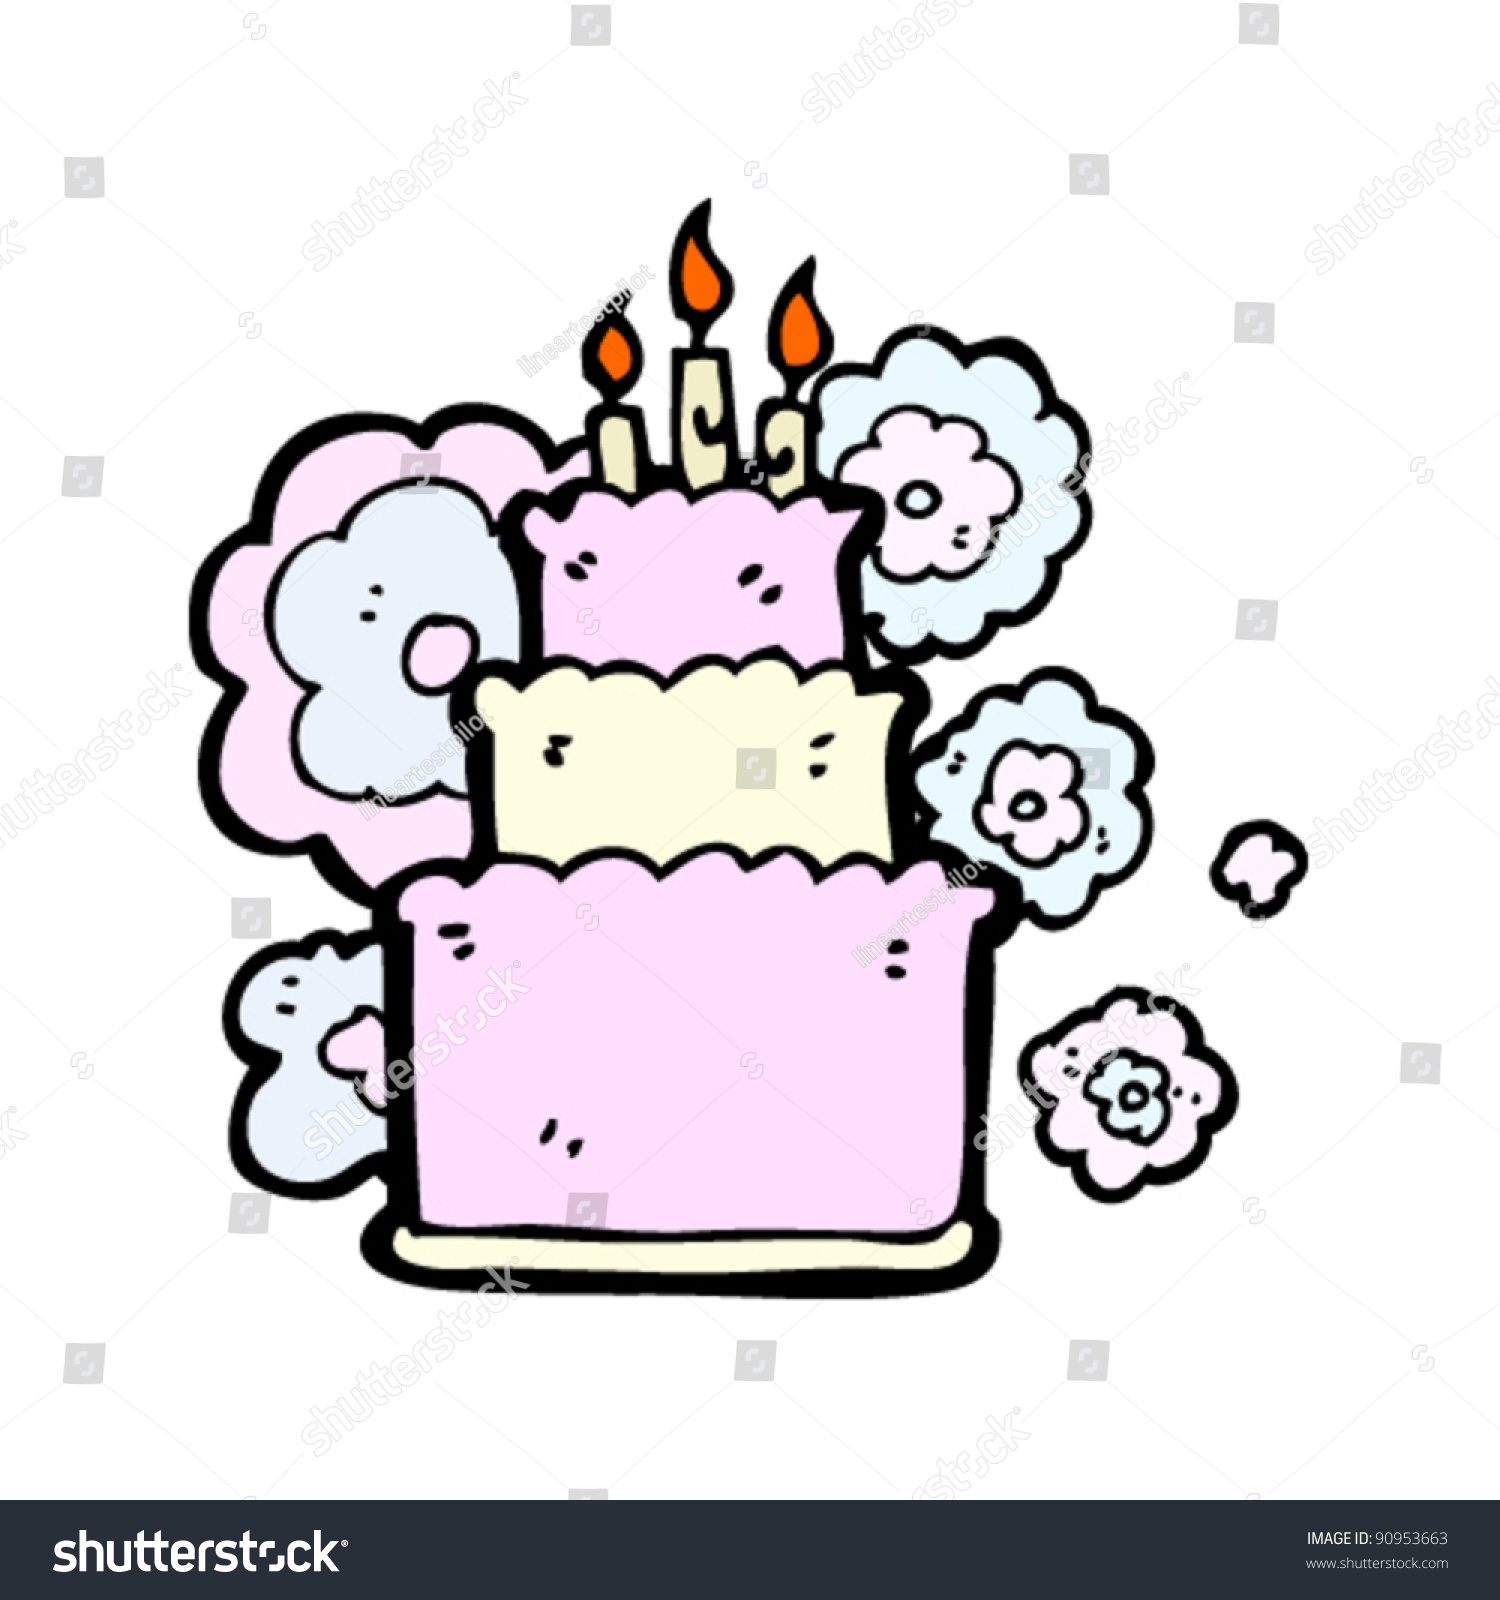 Huge Birthday Cake Cartoon Stock Vector 90953663 Shutterstock